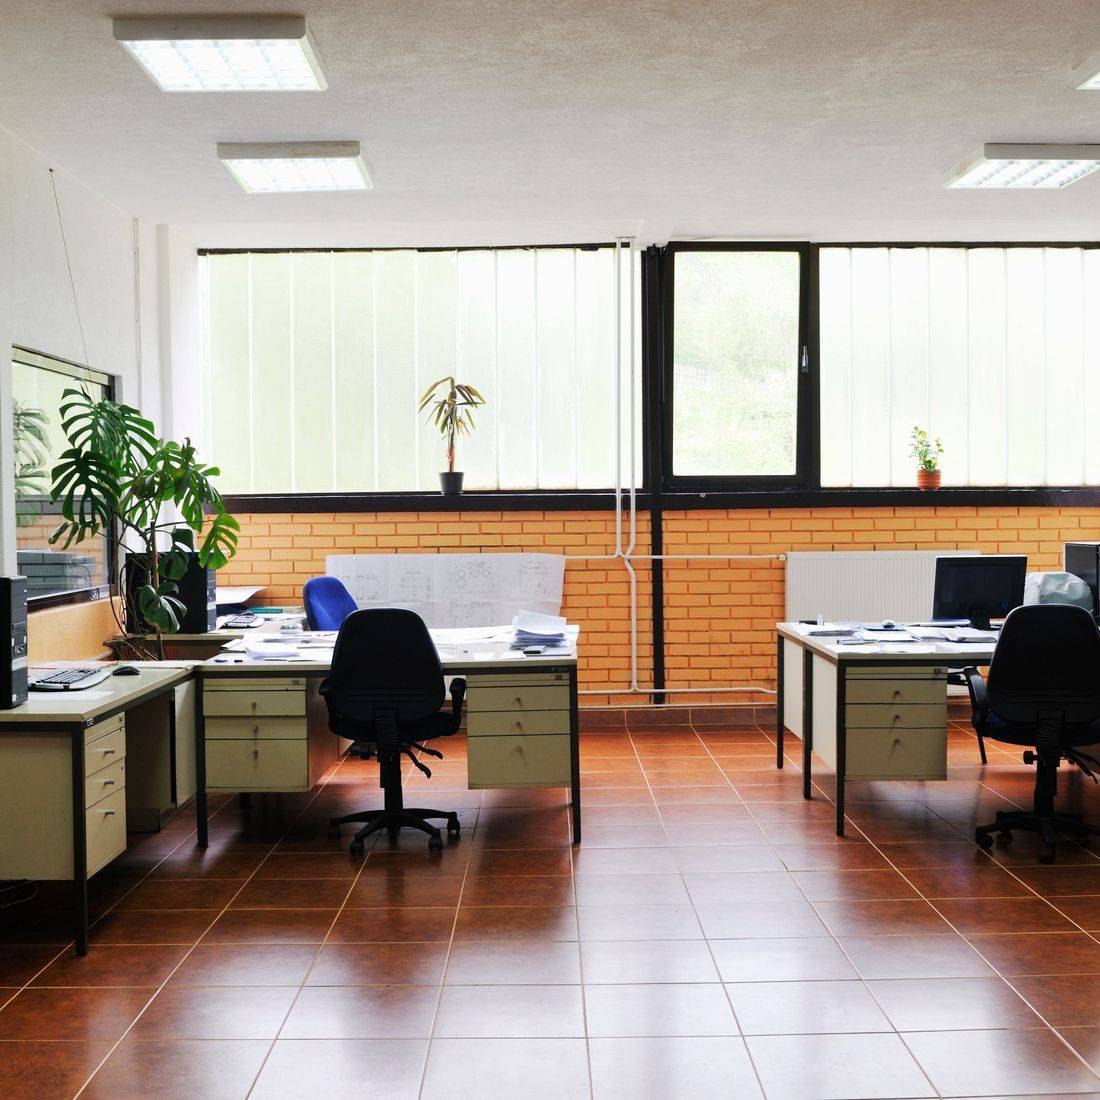 An Architect's Blog on Should I expand my office?